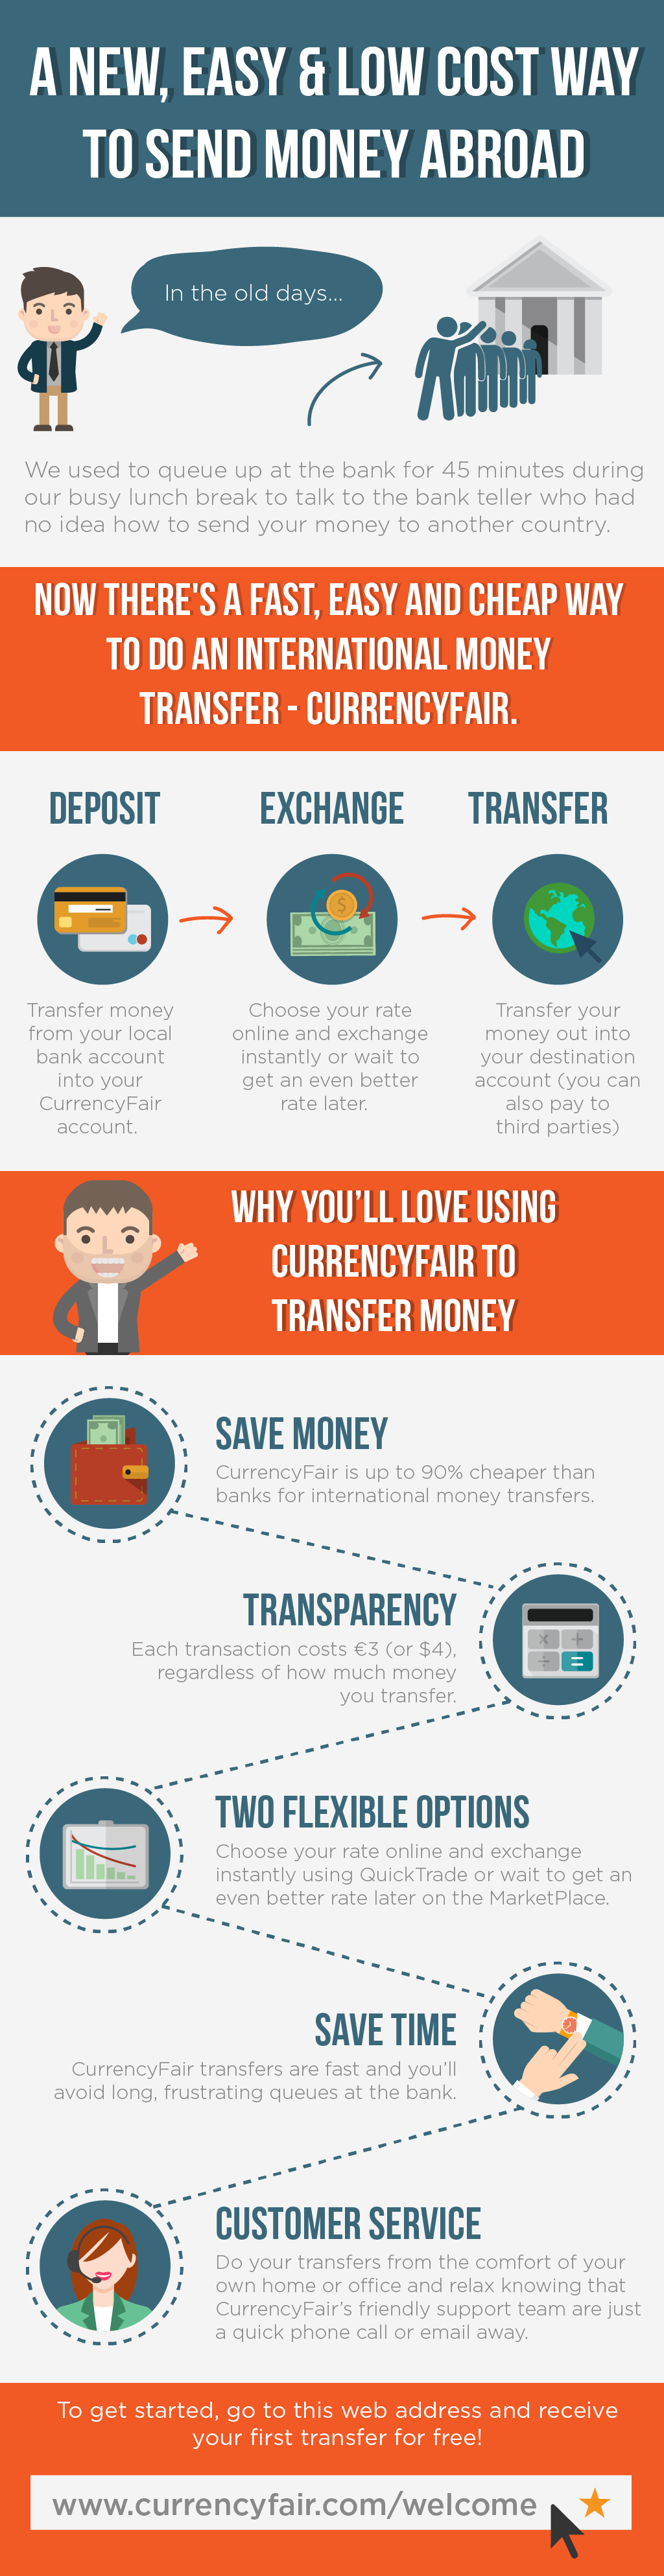 A New, Easy & Low Cost Way To Send Money Abroad